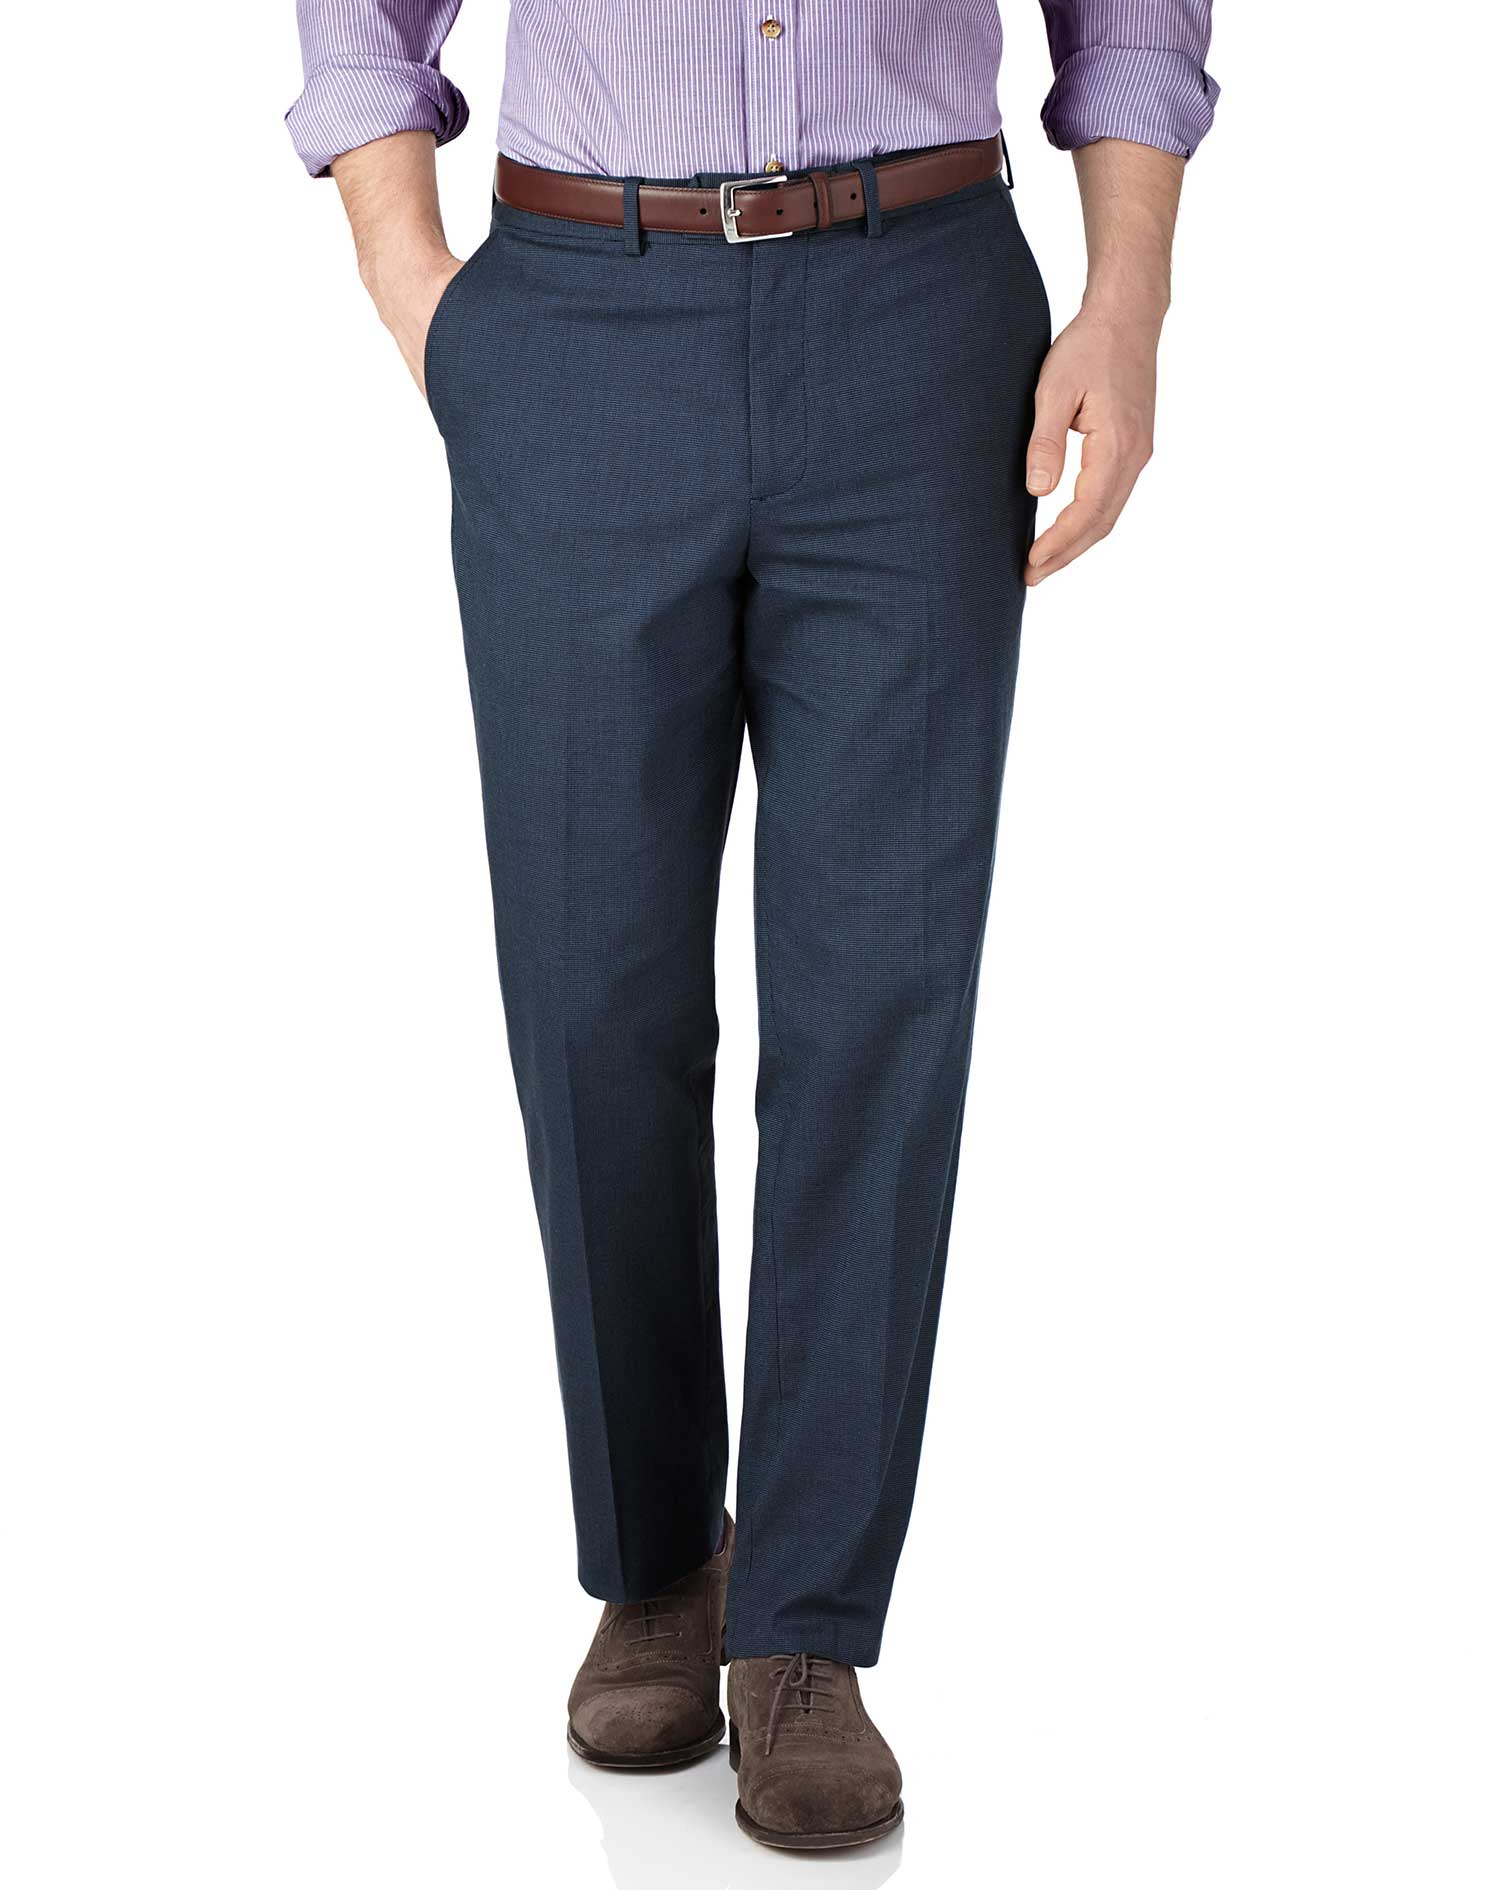 Blue Classic Fit Pin Dot Trousers Size W38 L30 by Charles Tyrwhitt